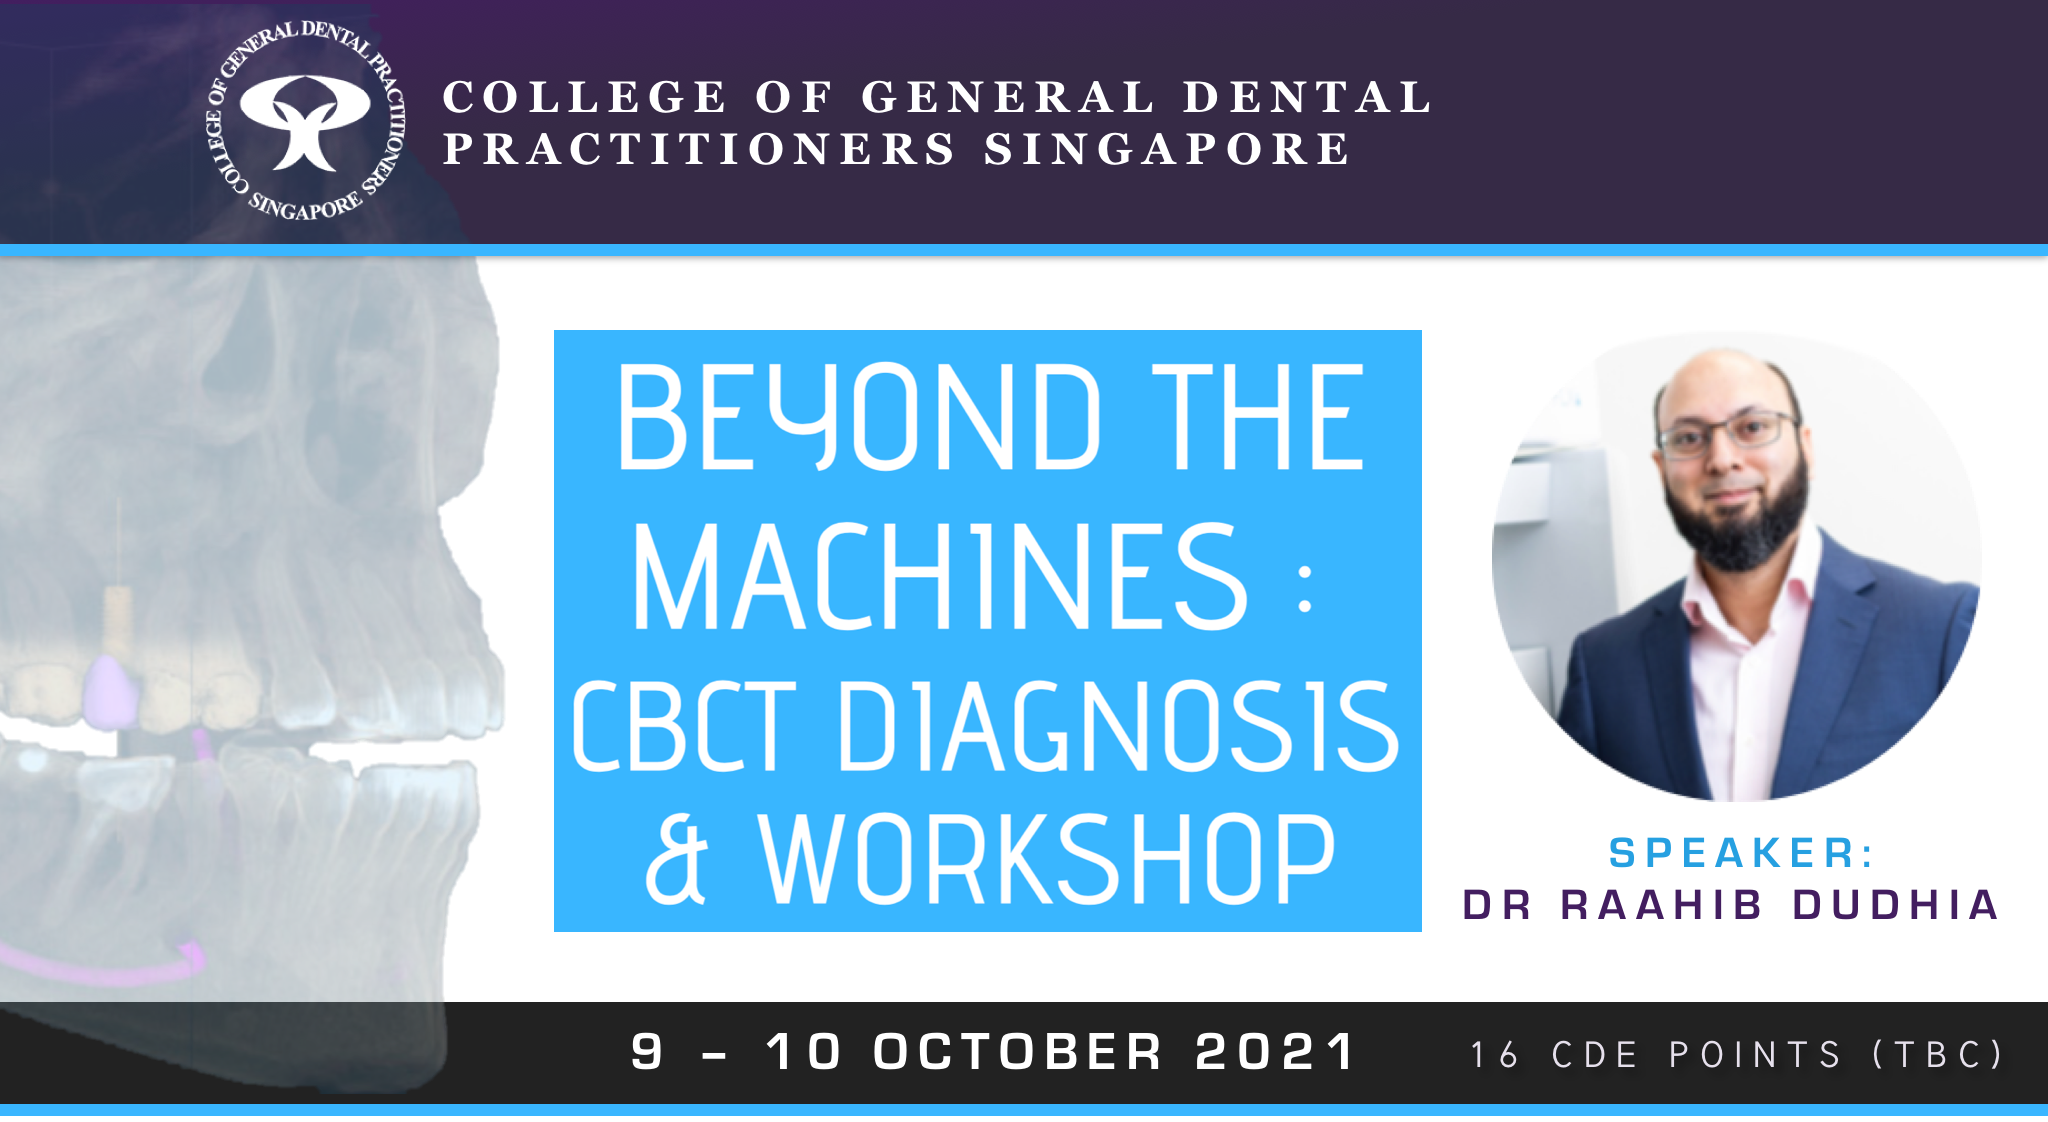 Beyond The Machines: CBCT Diagnosis & Workshop